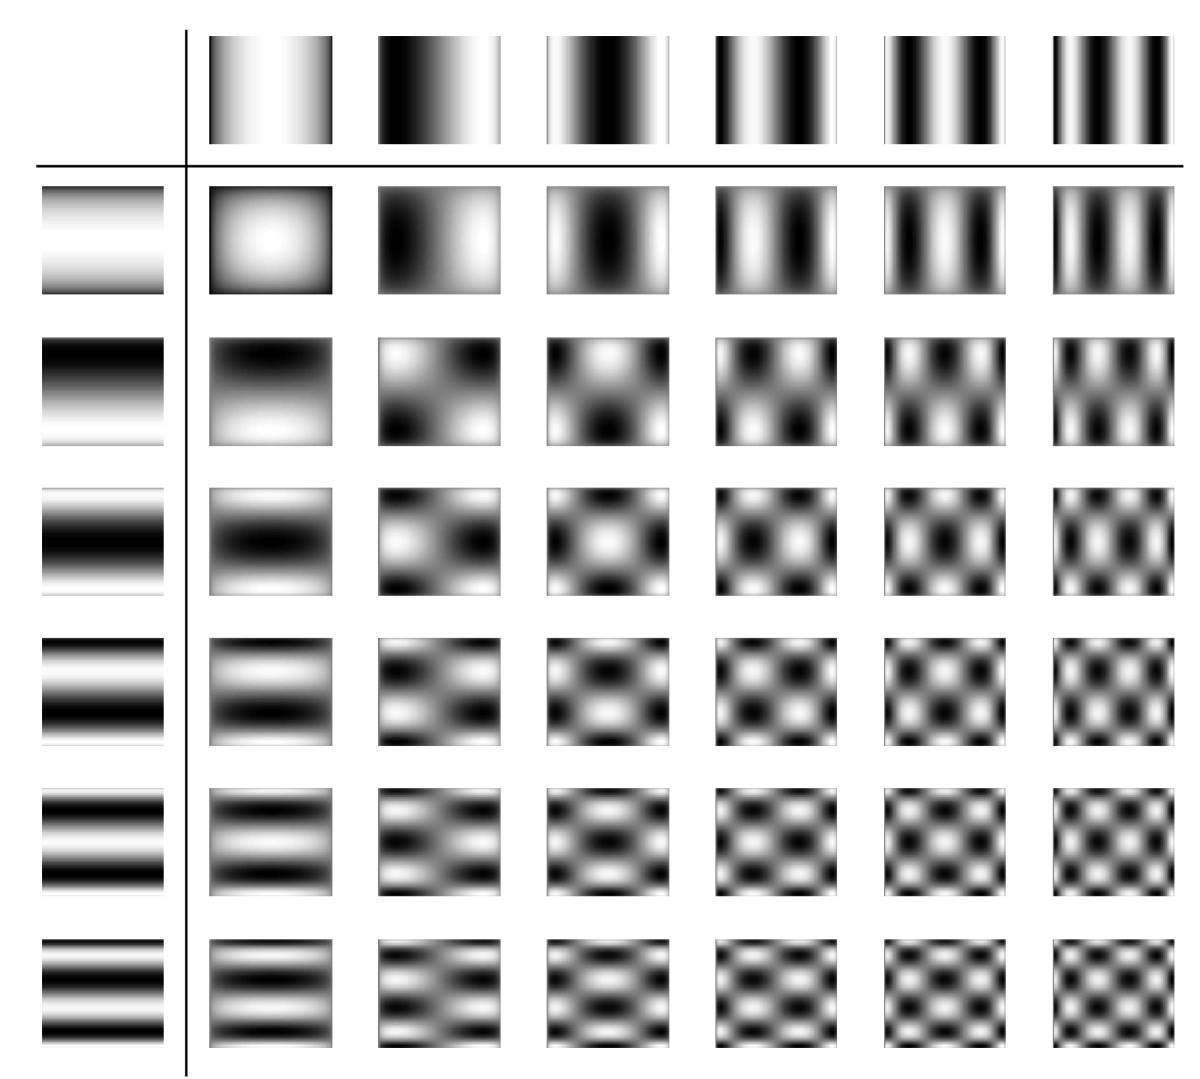 http://static-content.springer.com/image/art%3A10.1186%2F1471-2342-9-4/MediaObjects/12880_2008_Article_62_Fig9_HTML.jpg